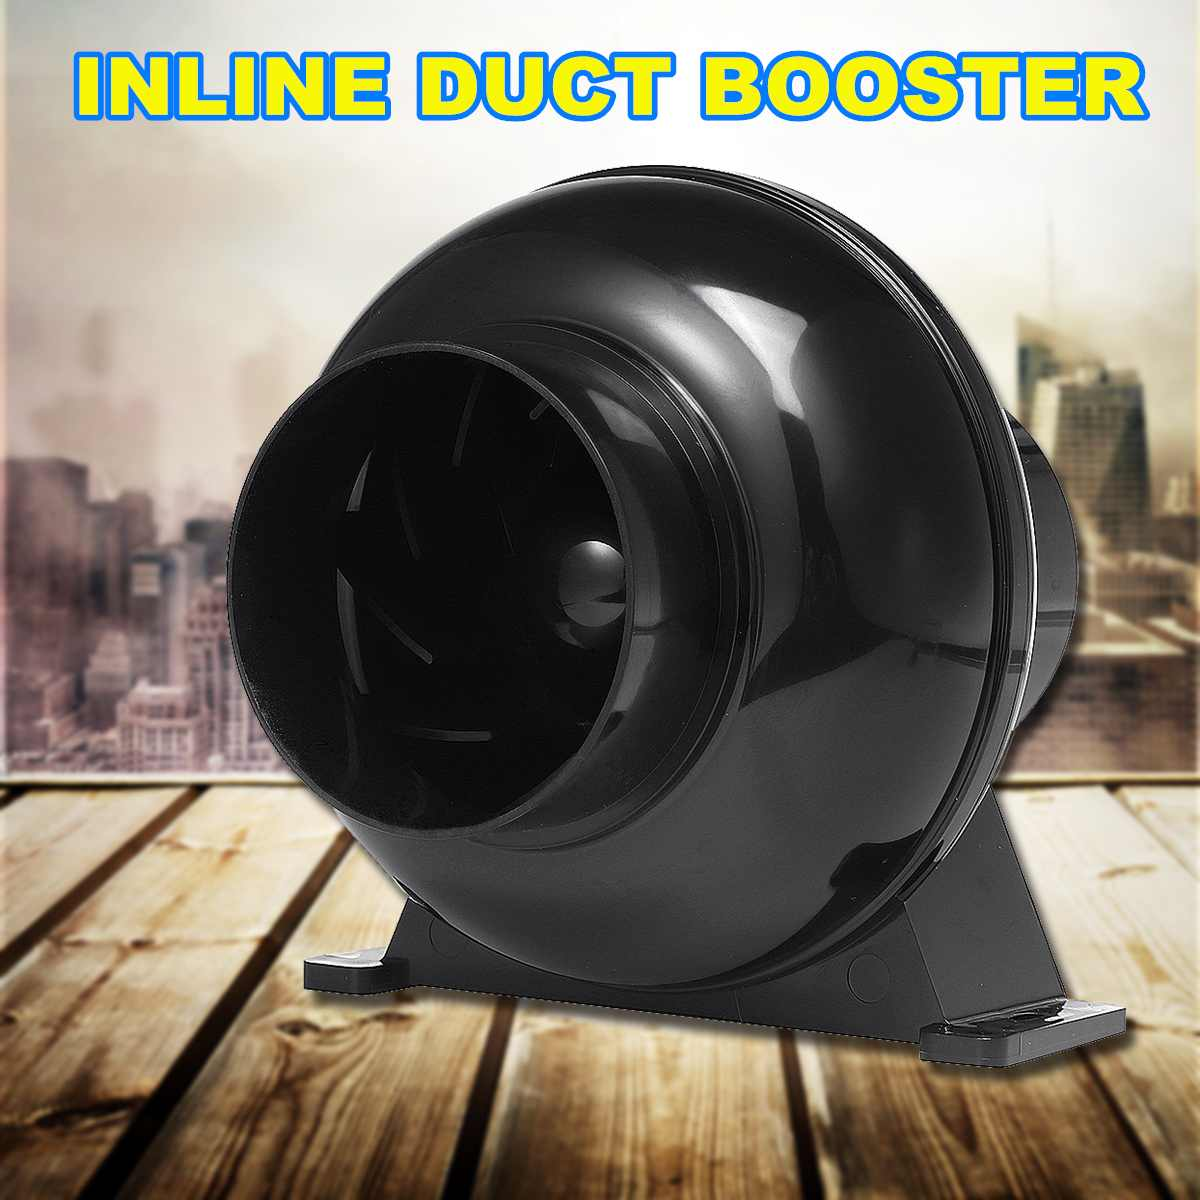 32W Duct Fan Exhaust-Fan-Blower Ventilation Exhaust Air Blower Cooling Fan Inline Duct-booster Ventilator Air Extractor 4 Inch